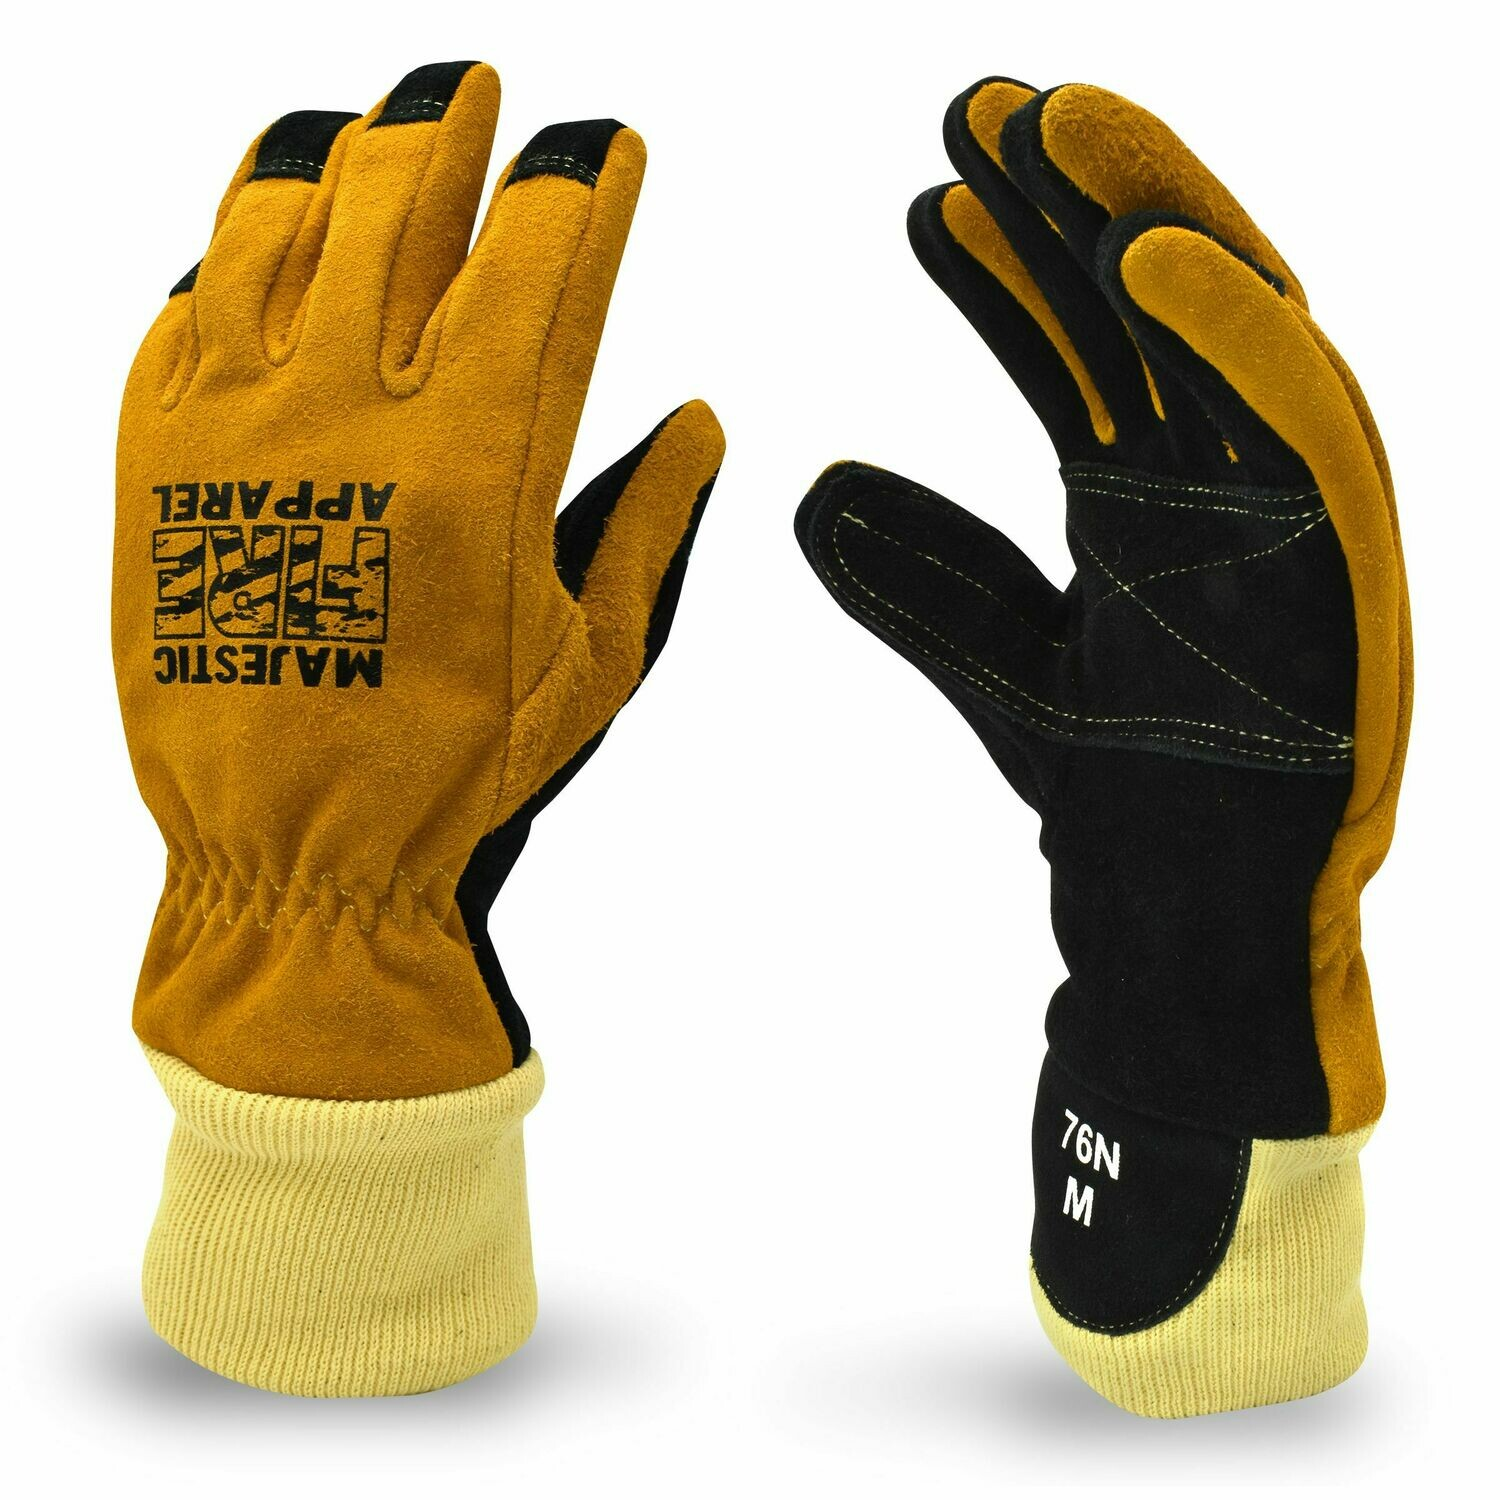 MFA 83 Structural Firefighting Gloves Wristlet